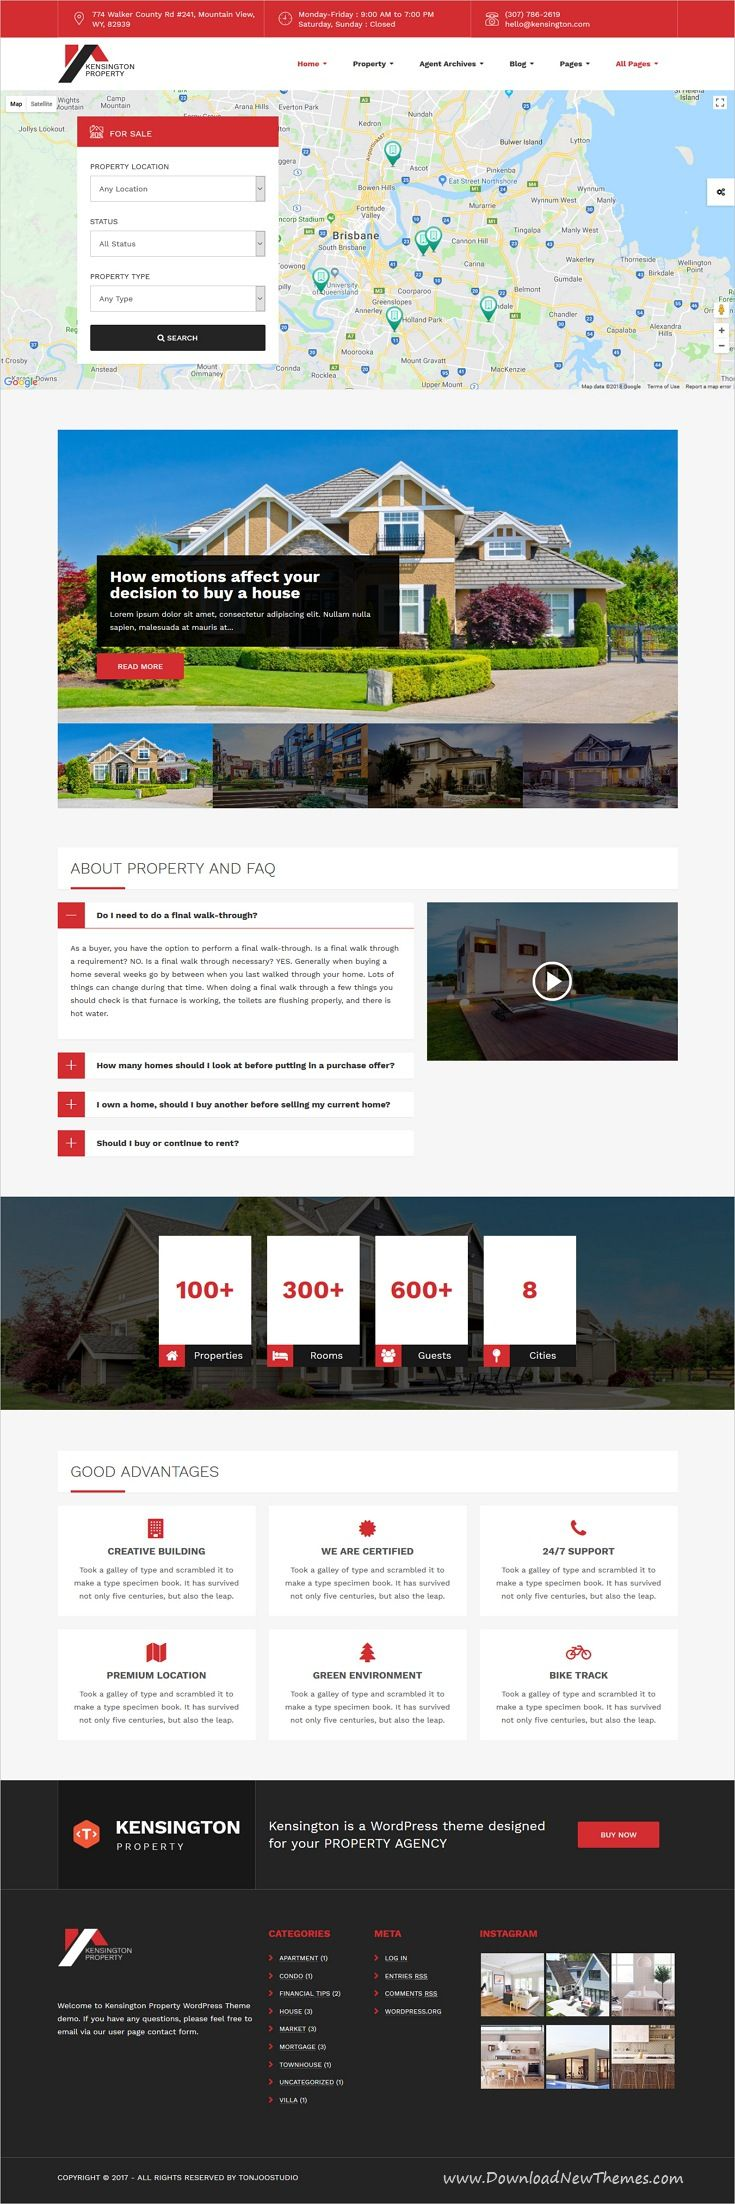 Kensington is clean and modern design 6in1 responsive WordPress theme for #realestate and #property management #website to live preview & download click on image or Visit  #webdesign